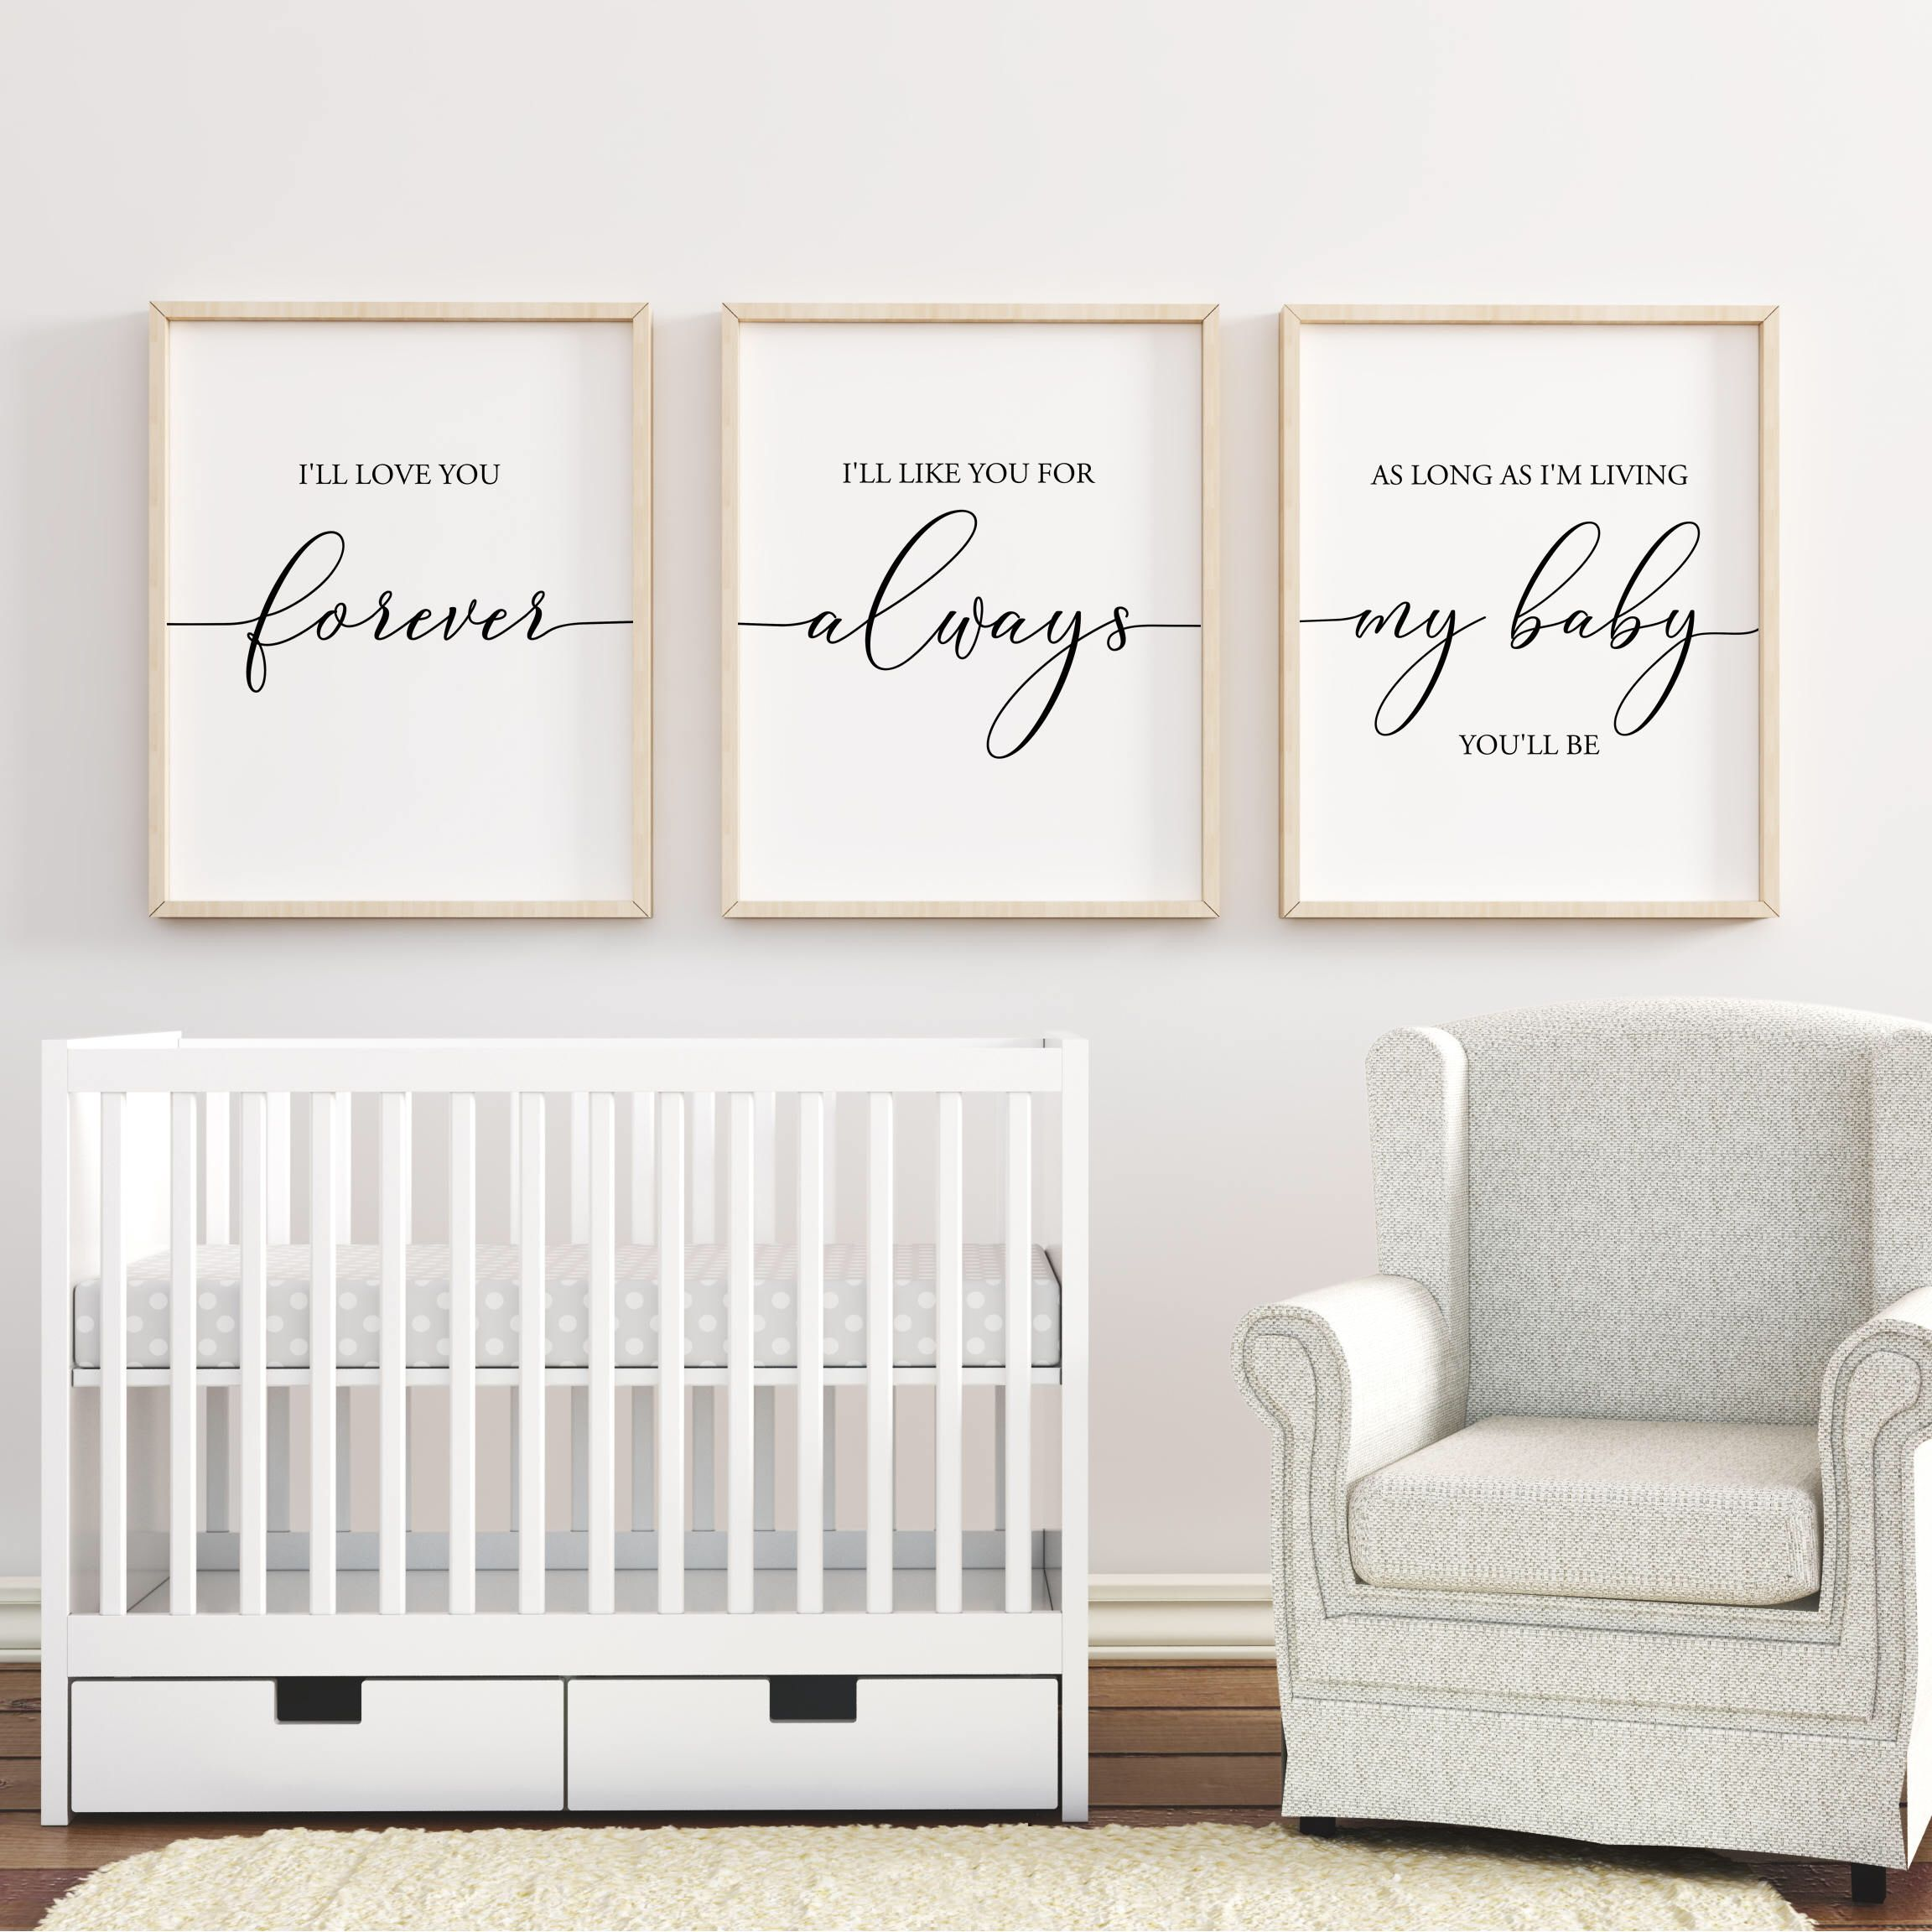 13 Wall Designs Decor Ideas For Nursery: Pin By McKenzee Mize On Wall Art